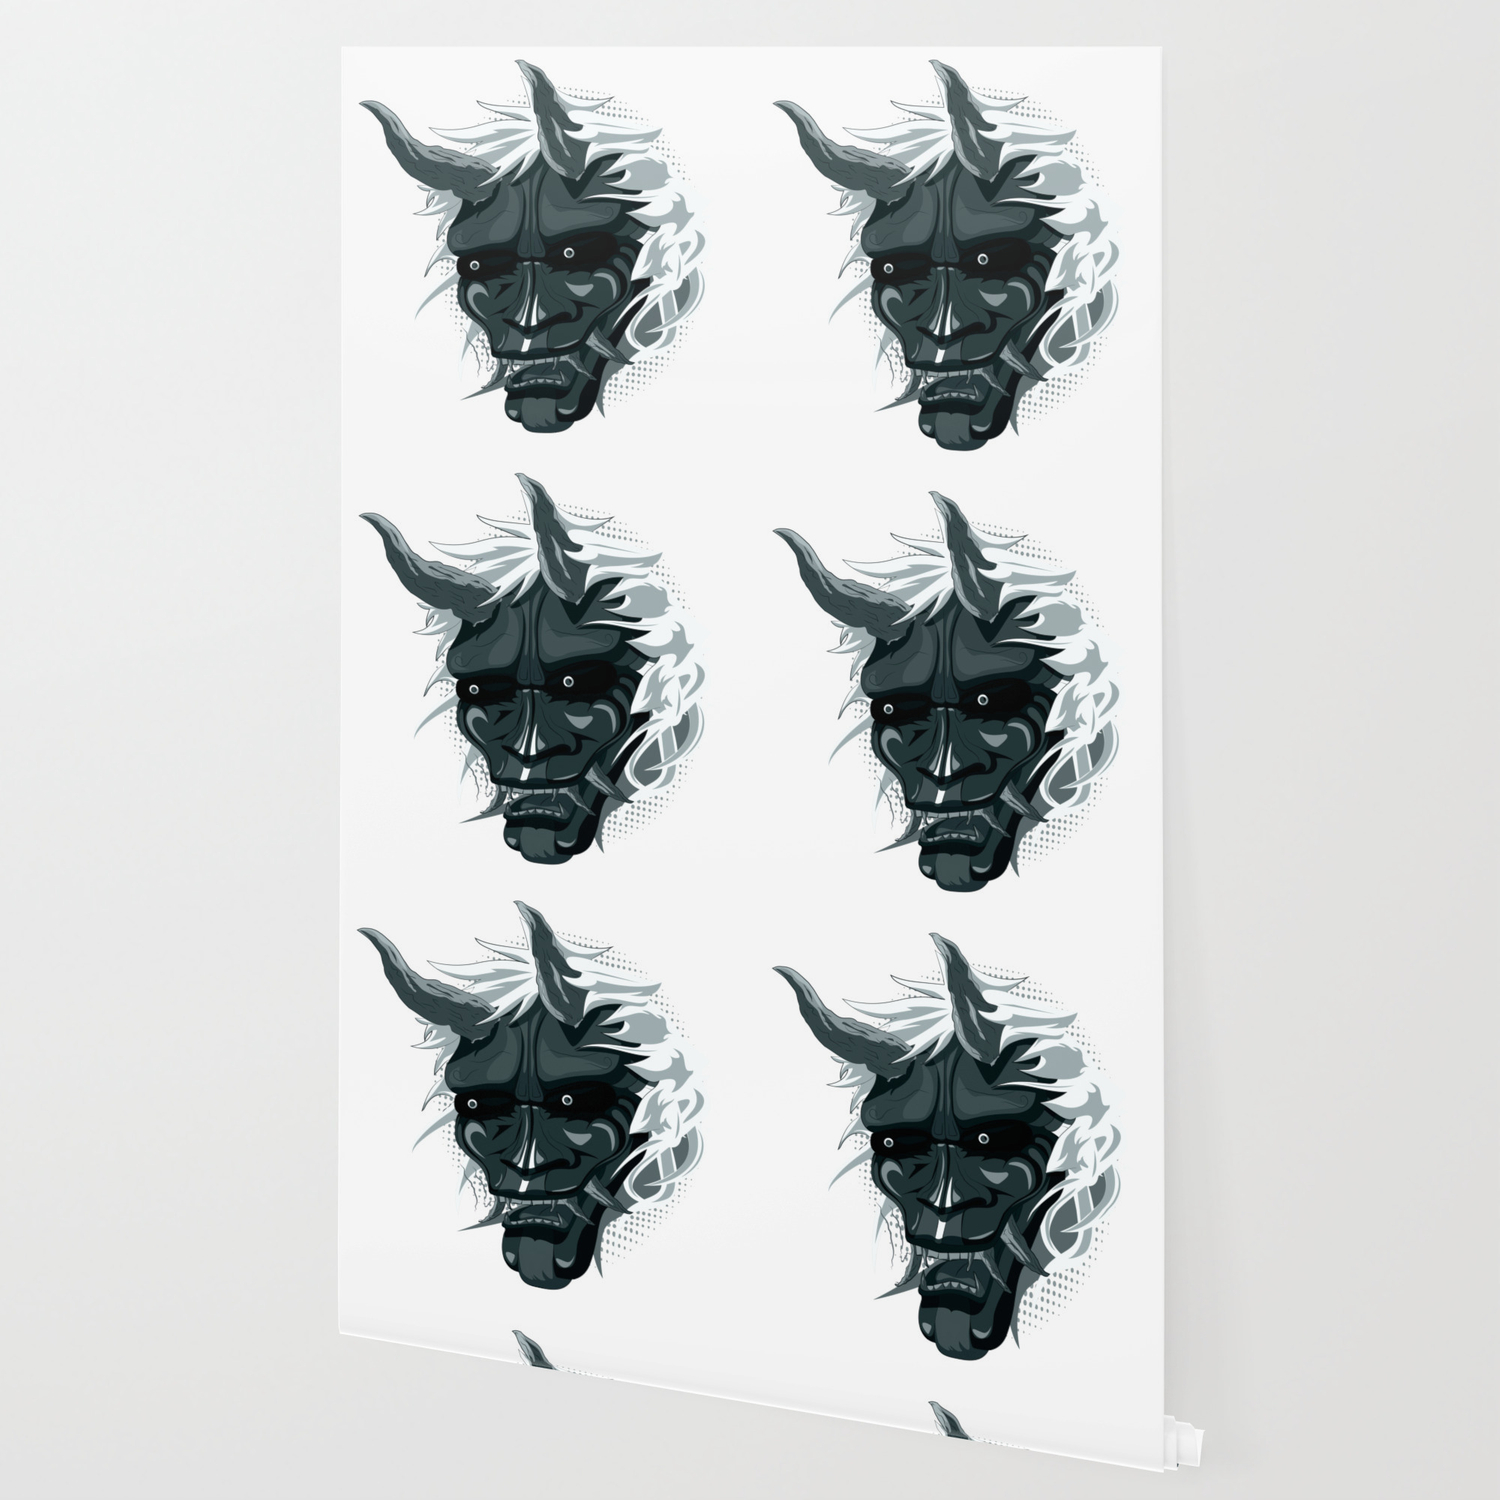 Oni Mask Japanese Ogre Color Case Wallpaper By Dirtdiver Society6 Download oni mask wallpaper hd by spacecatmarine. oni mask japanese ogre color case wallpaper